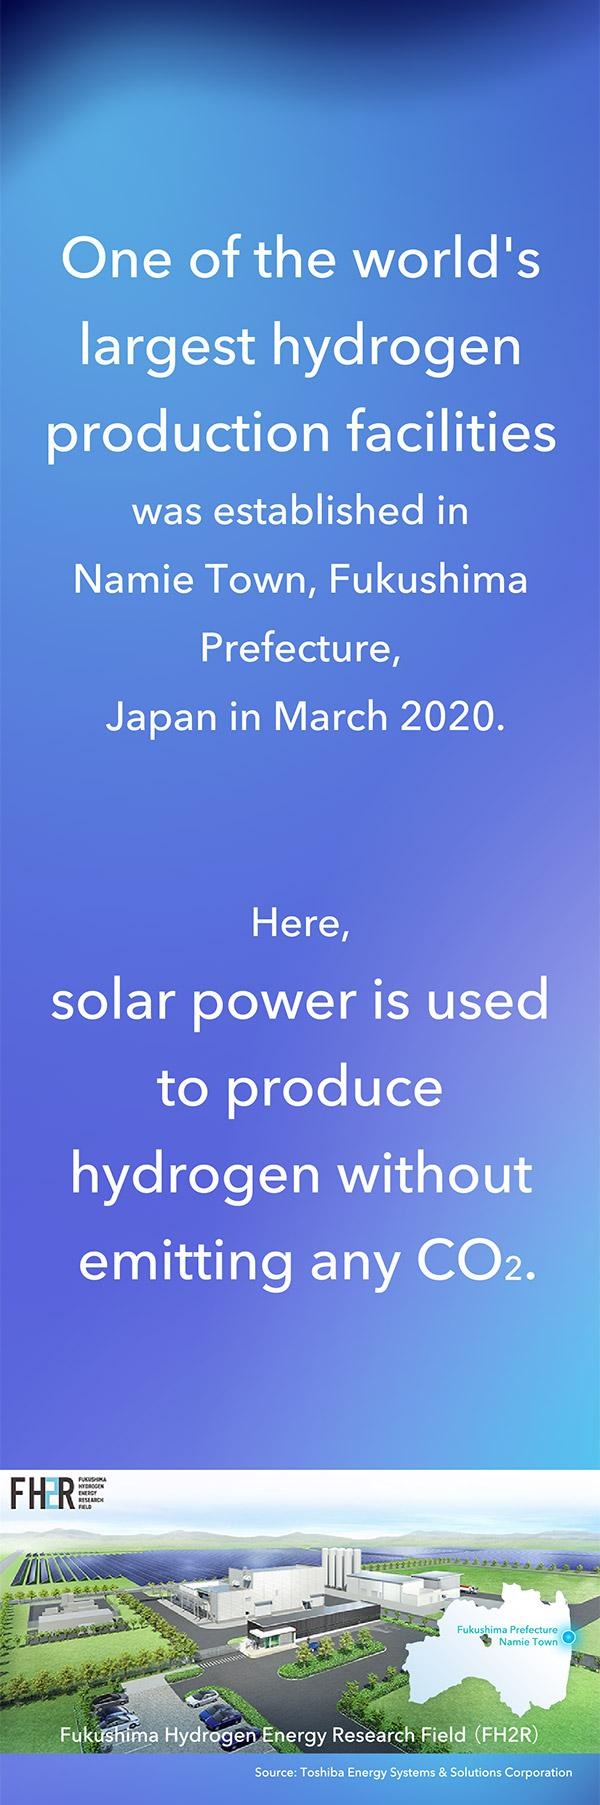 Fukushima Hydrogen Energy Research Field was established in Namie Town, Fukushima Prefecture, Japan in March 2020, as one of the world's largest hydrogen production facilities.